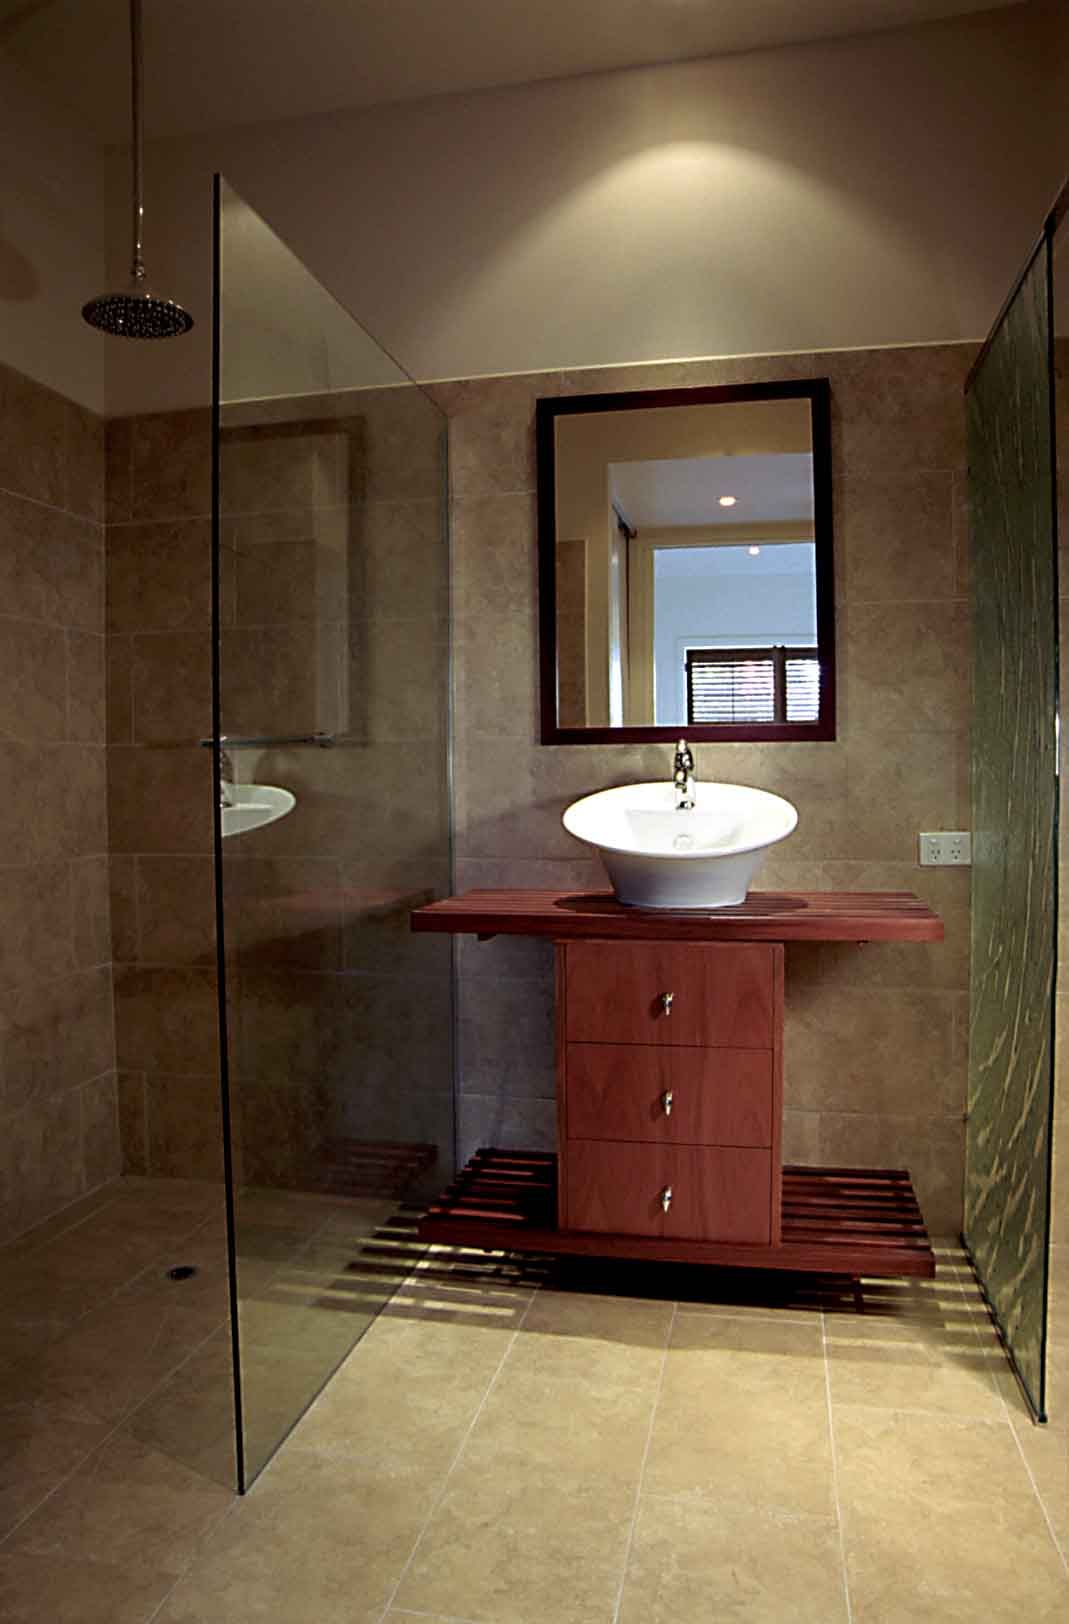 Wet room design for small bathrooms small ensuite bathroom design ideas small bathroom wet - Bathroom small design ...